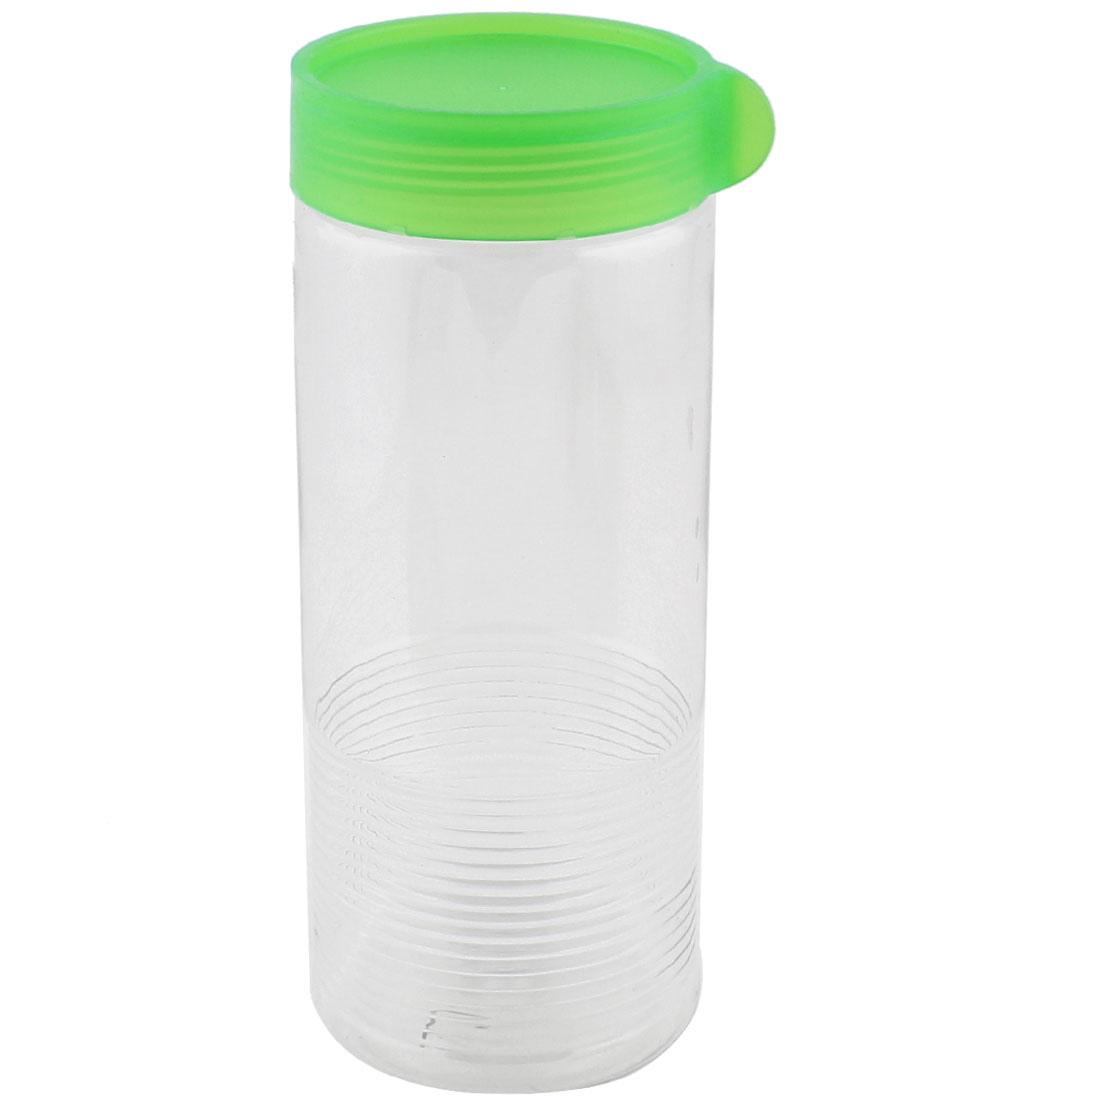 Family Kitchenware Plastic Sugar Cookie Nuts Seal Food Canister Container Green 900ML